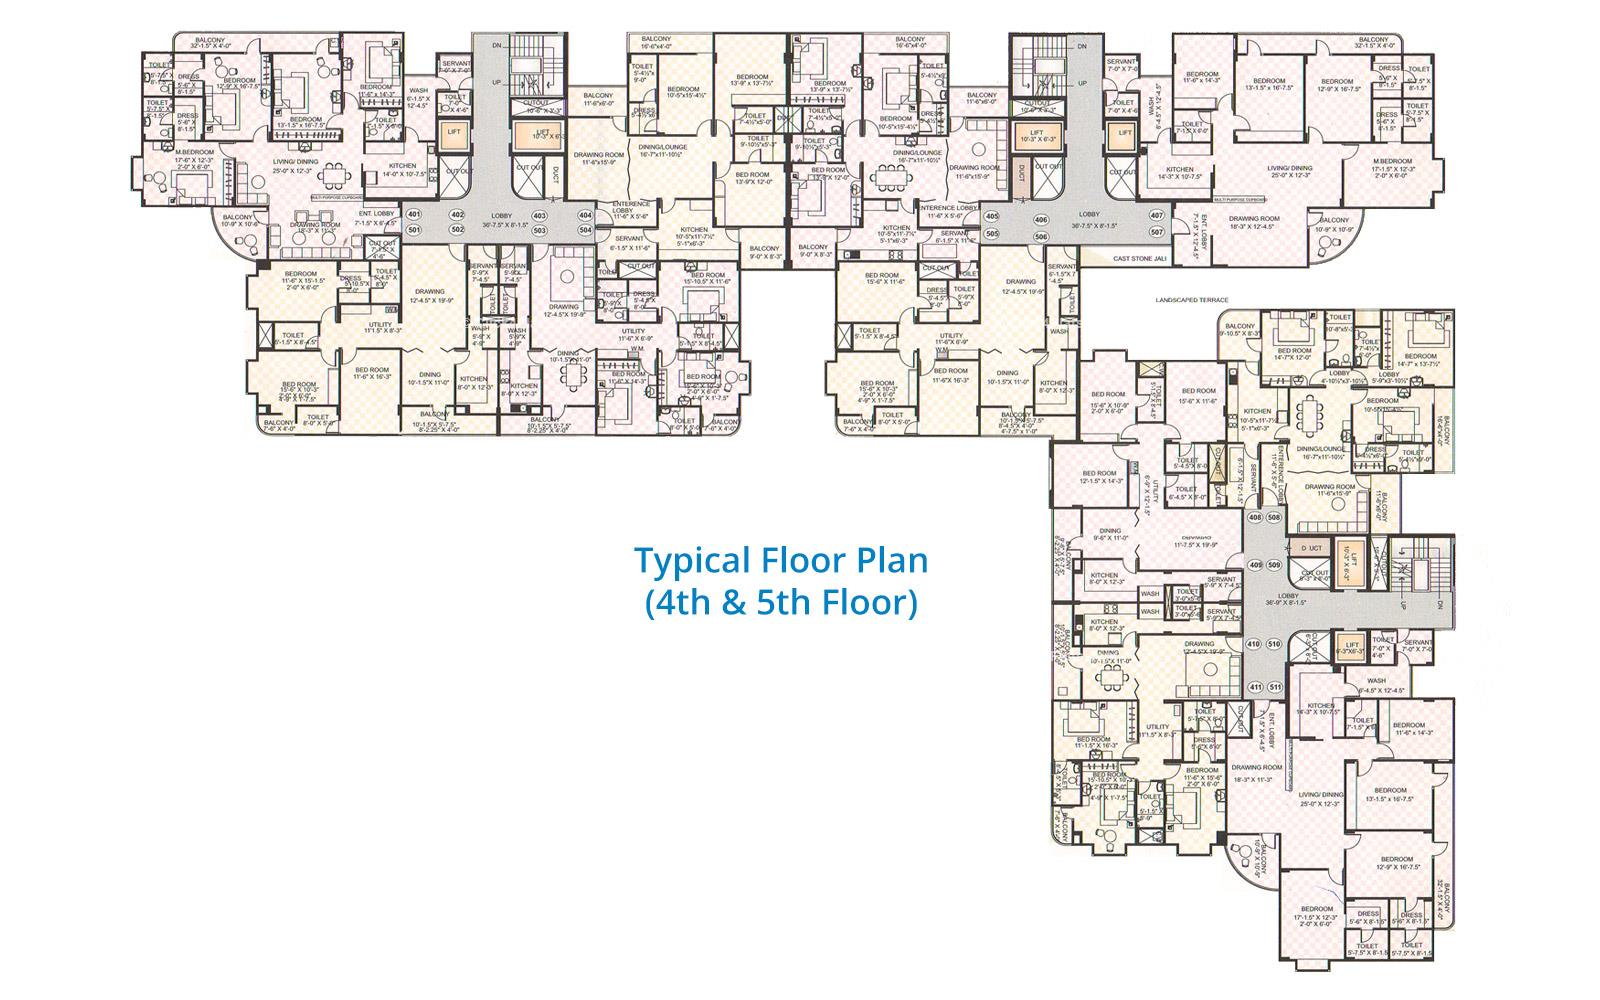 City Pulse Typical Floor Plan